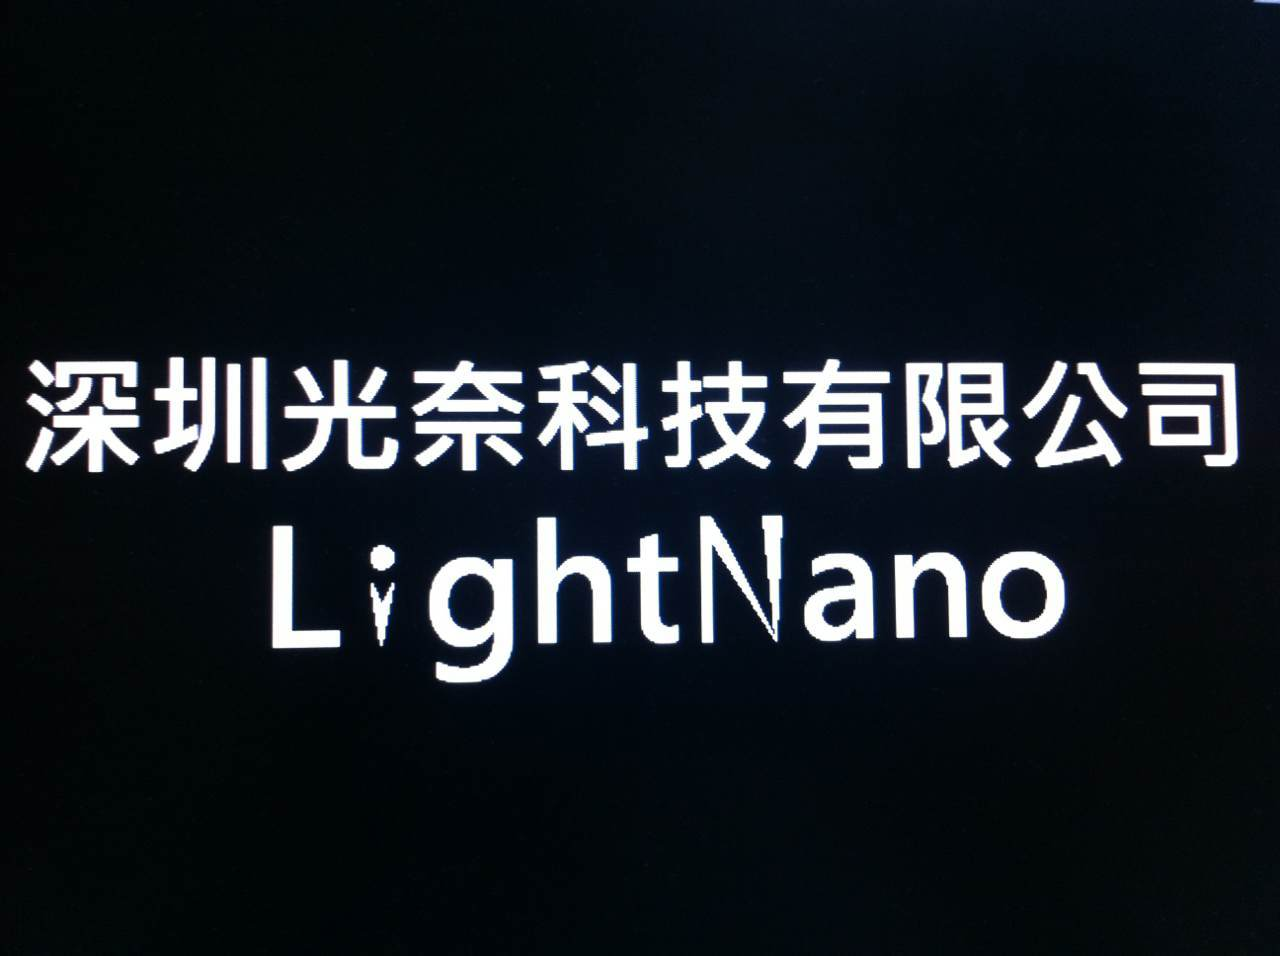 Congratulatio for Nanolight